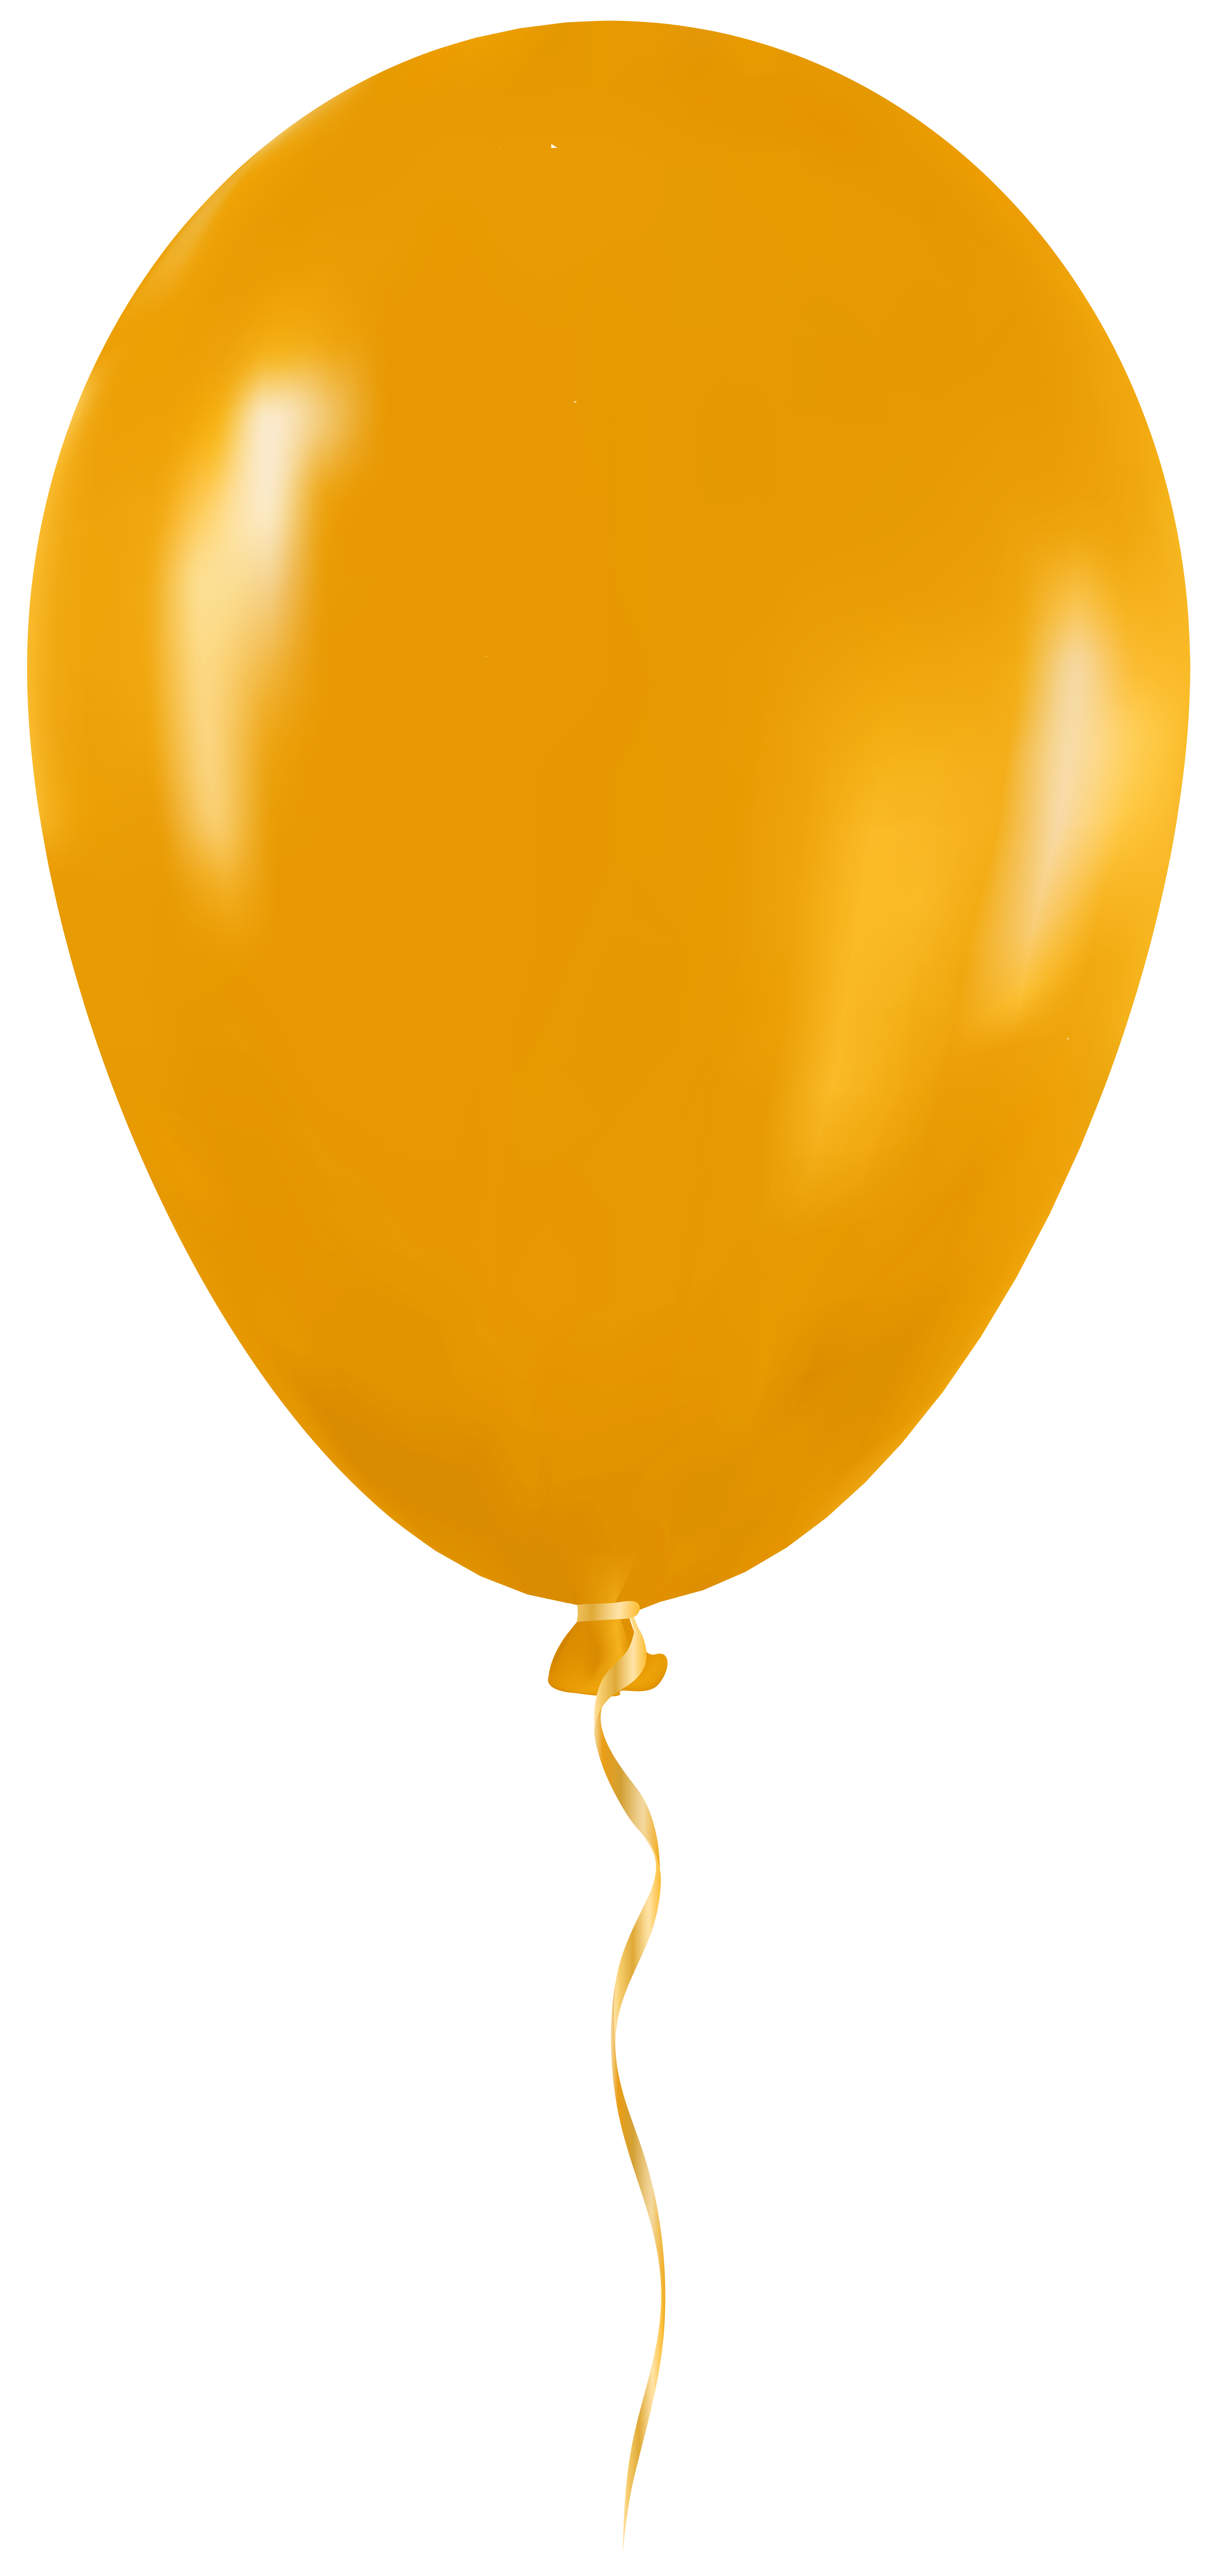 Yellow png clip art. Clipart balloon orange